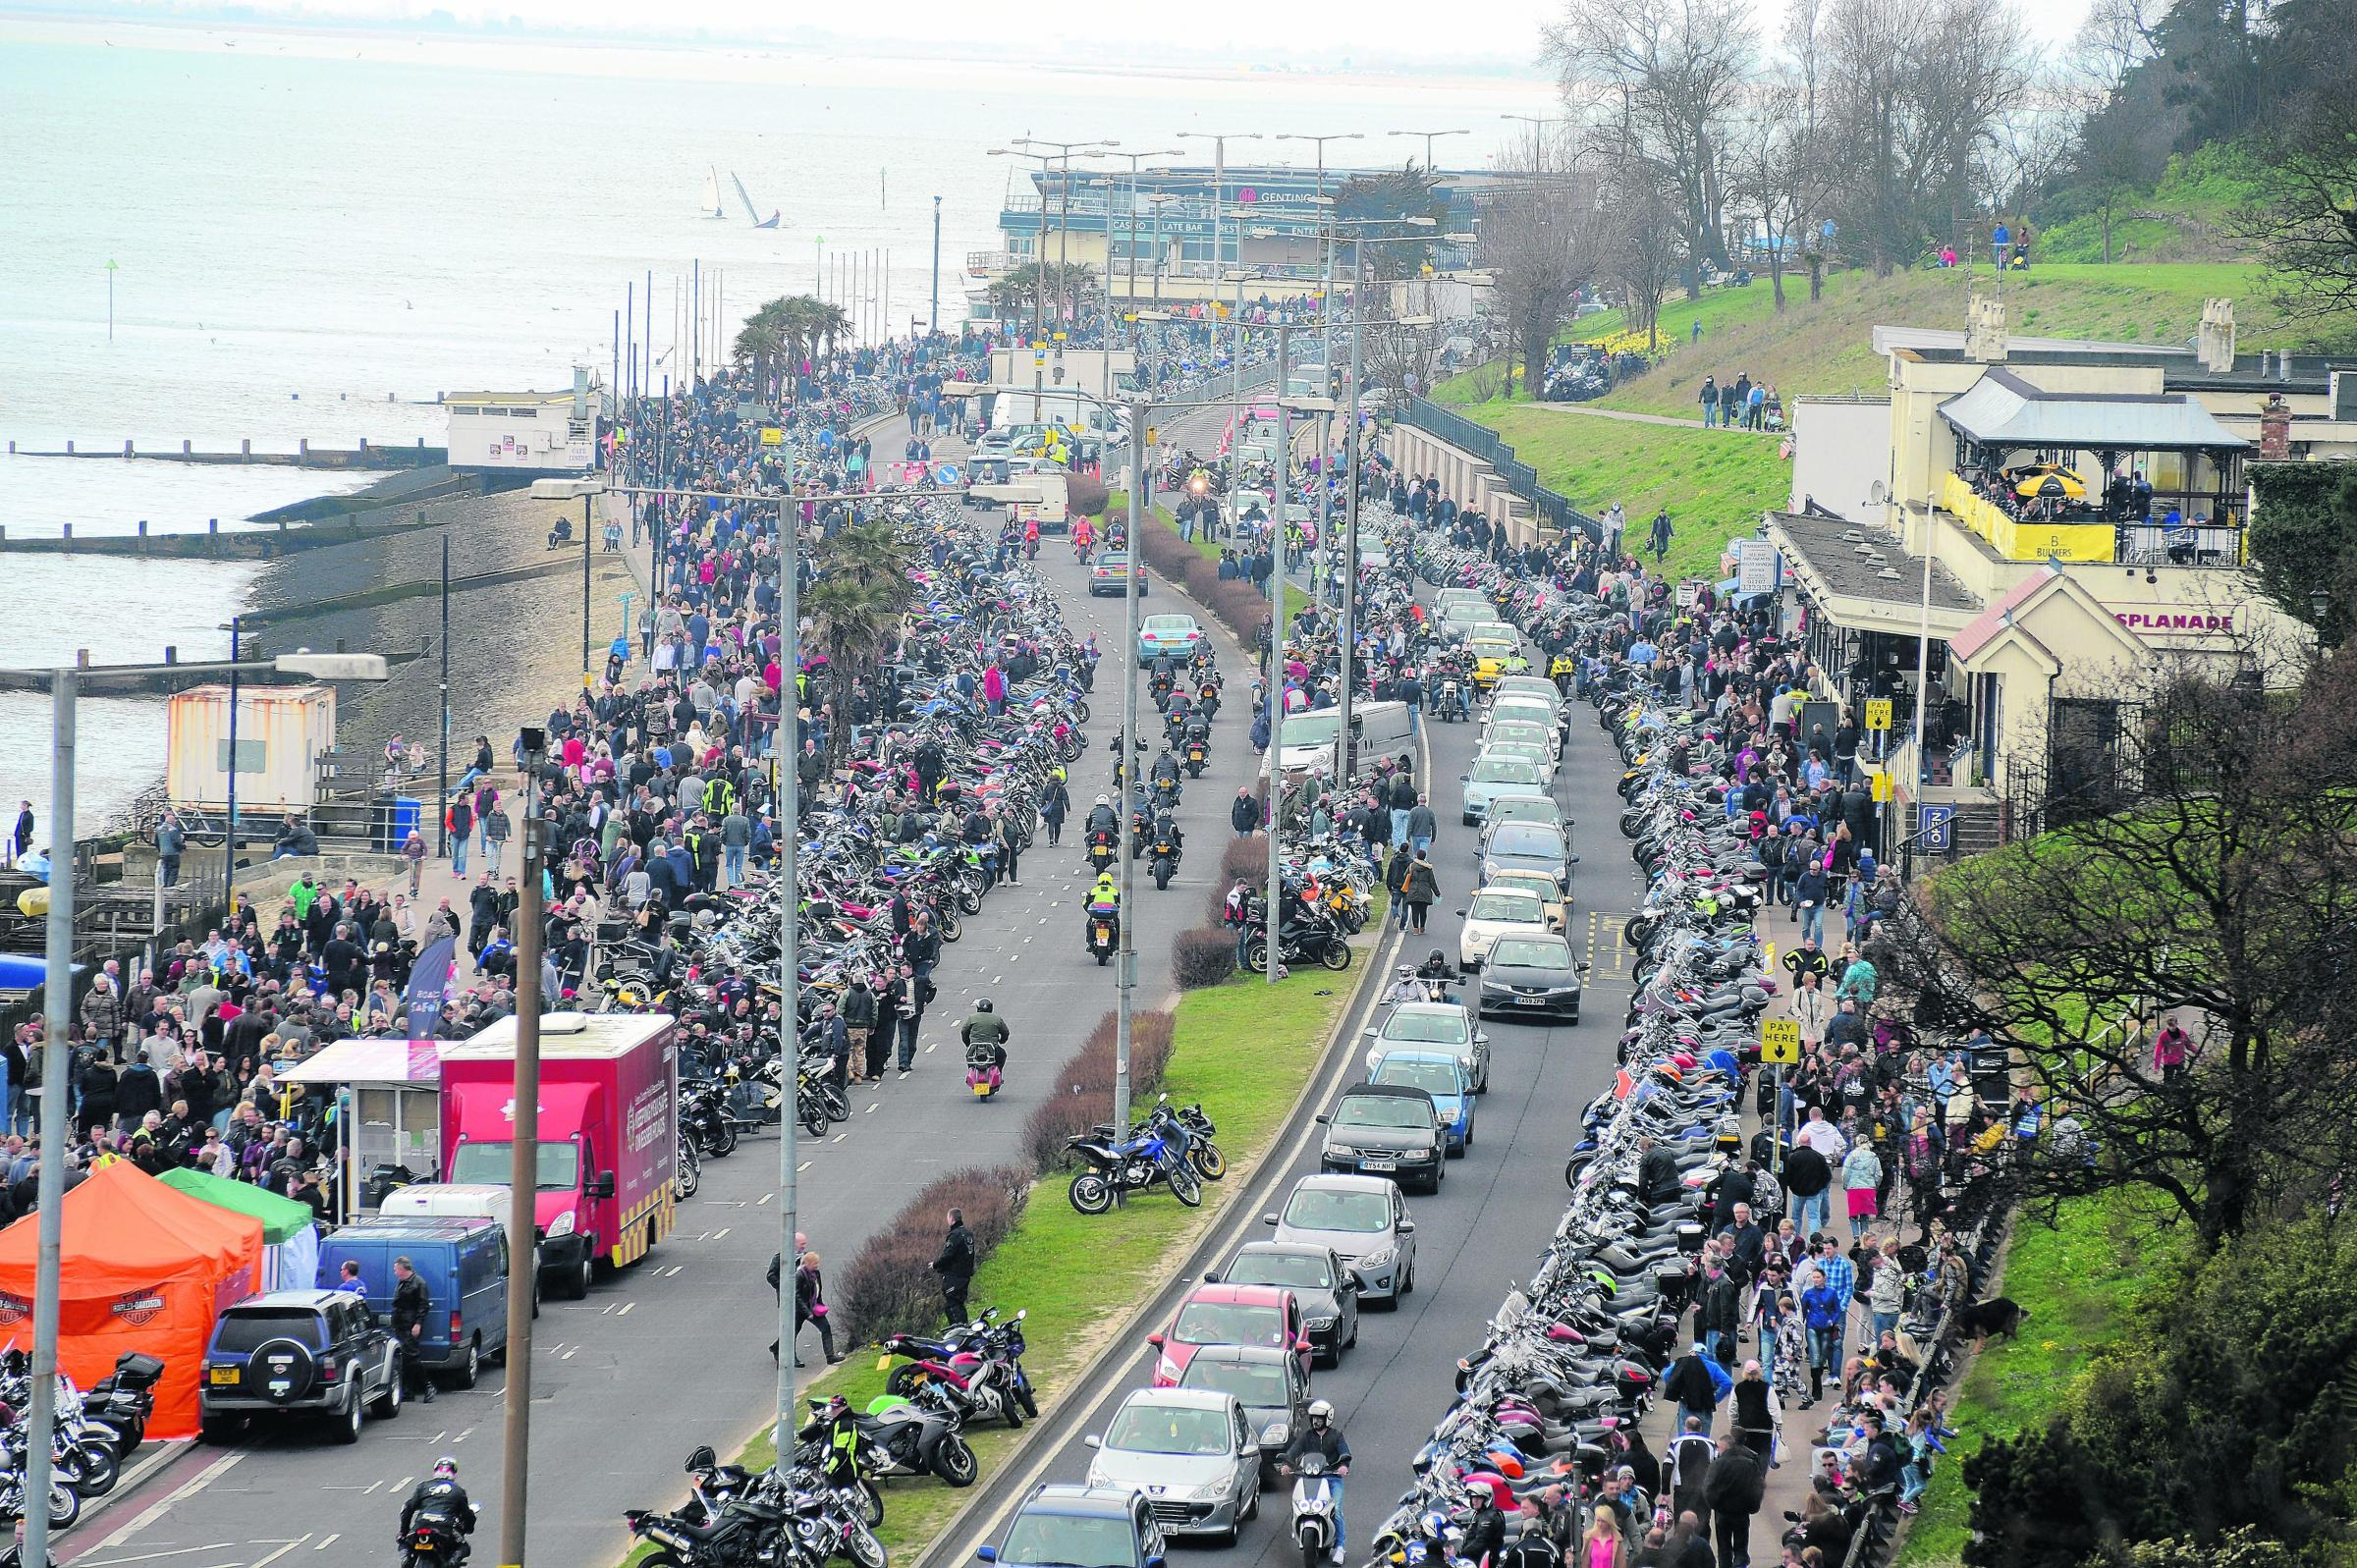 Thousands of bikers packed the seafront at a previous Shakedown.